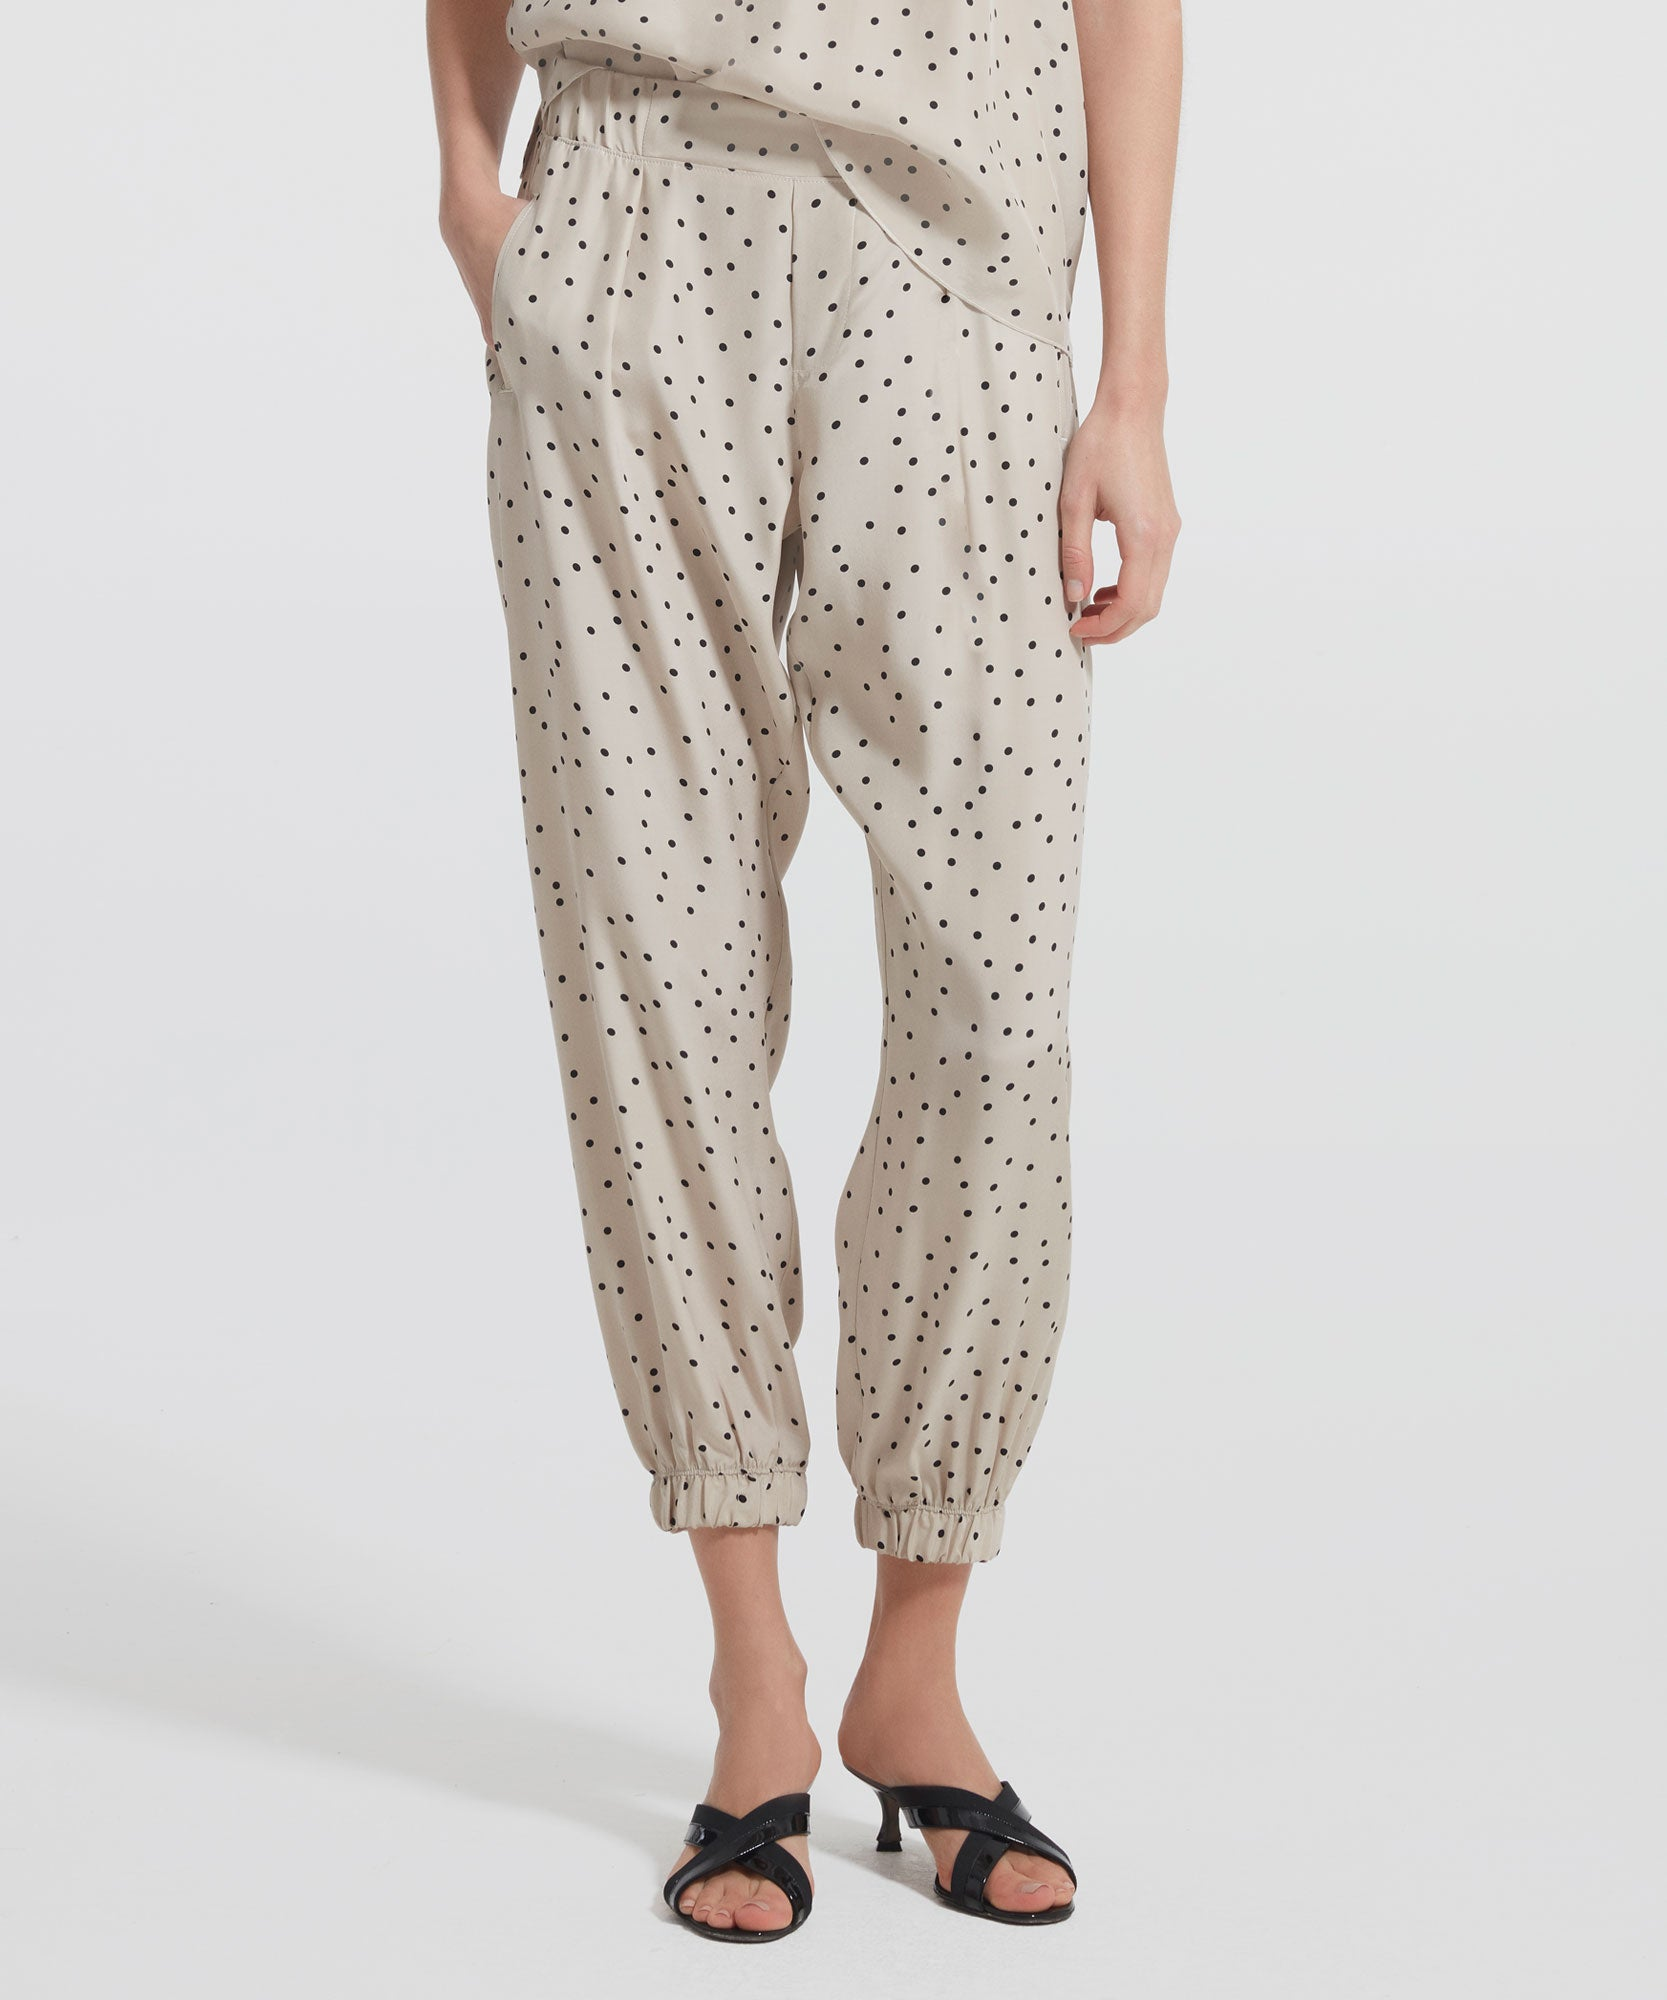 Soil Polka Dot Silk Sweatpants - Women's Silk Pants by ATM Anthony Thomas Melillo